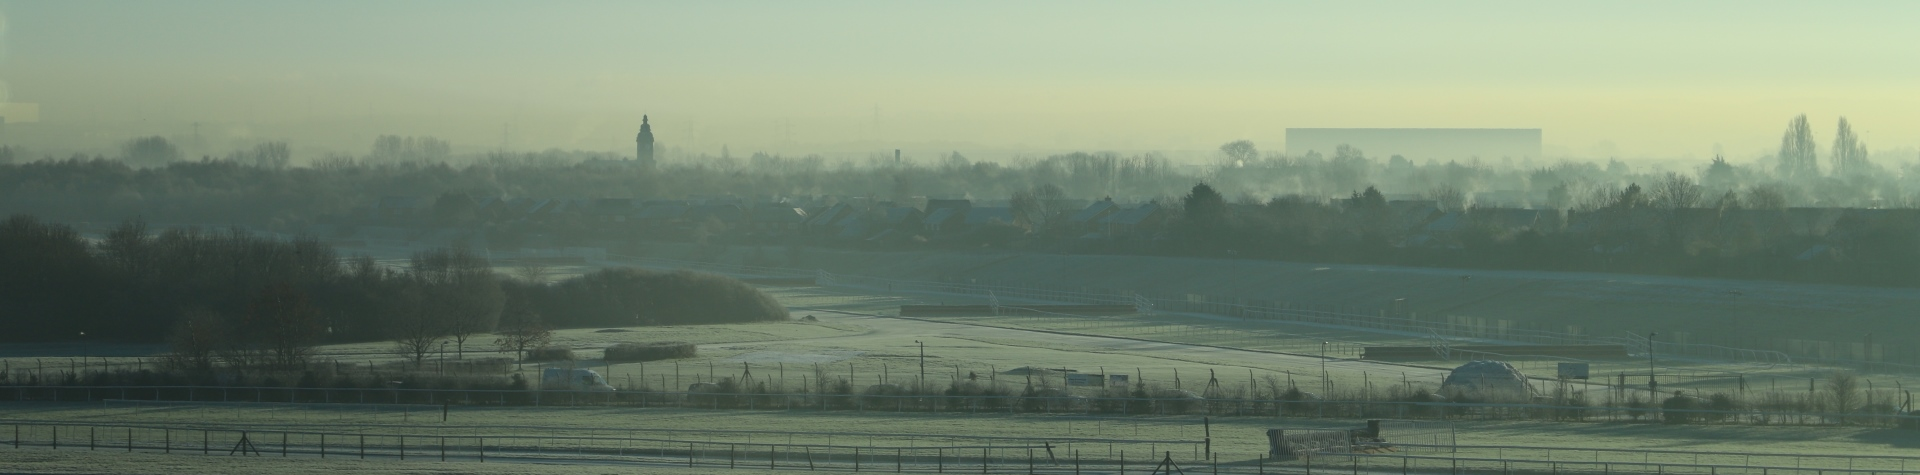 View across Aintree Racecourse